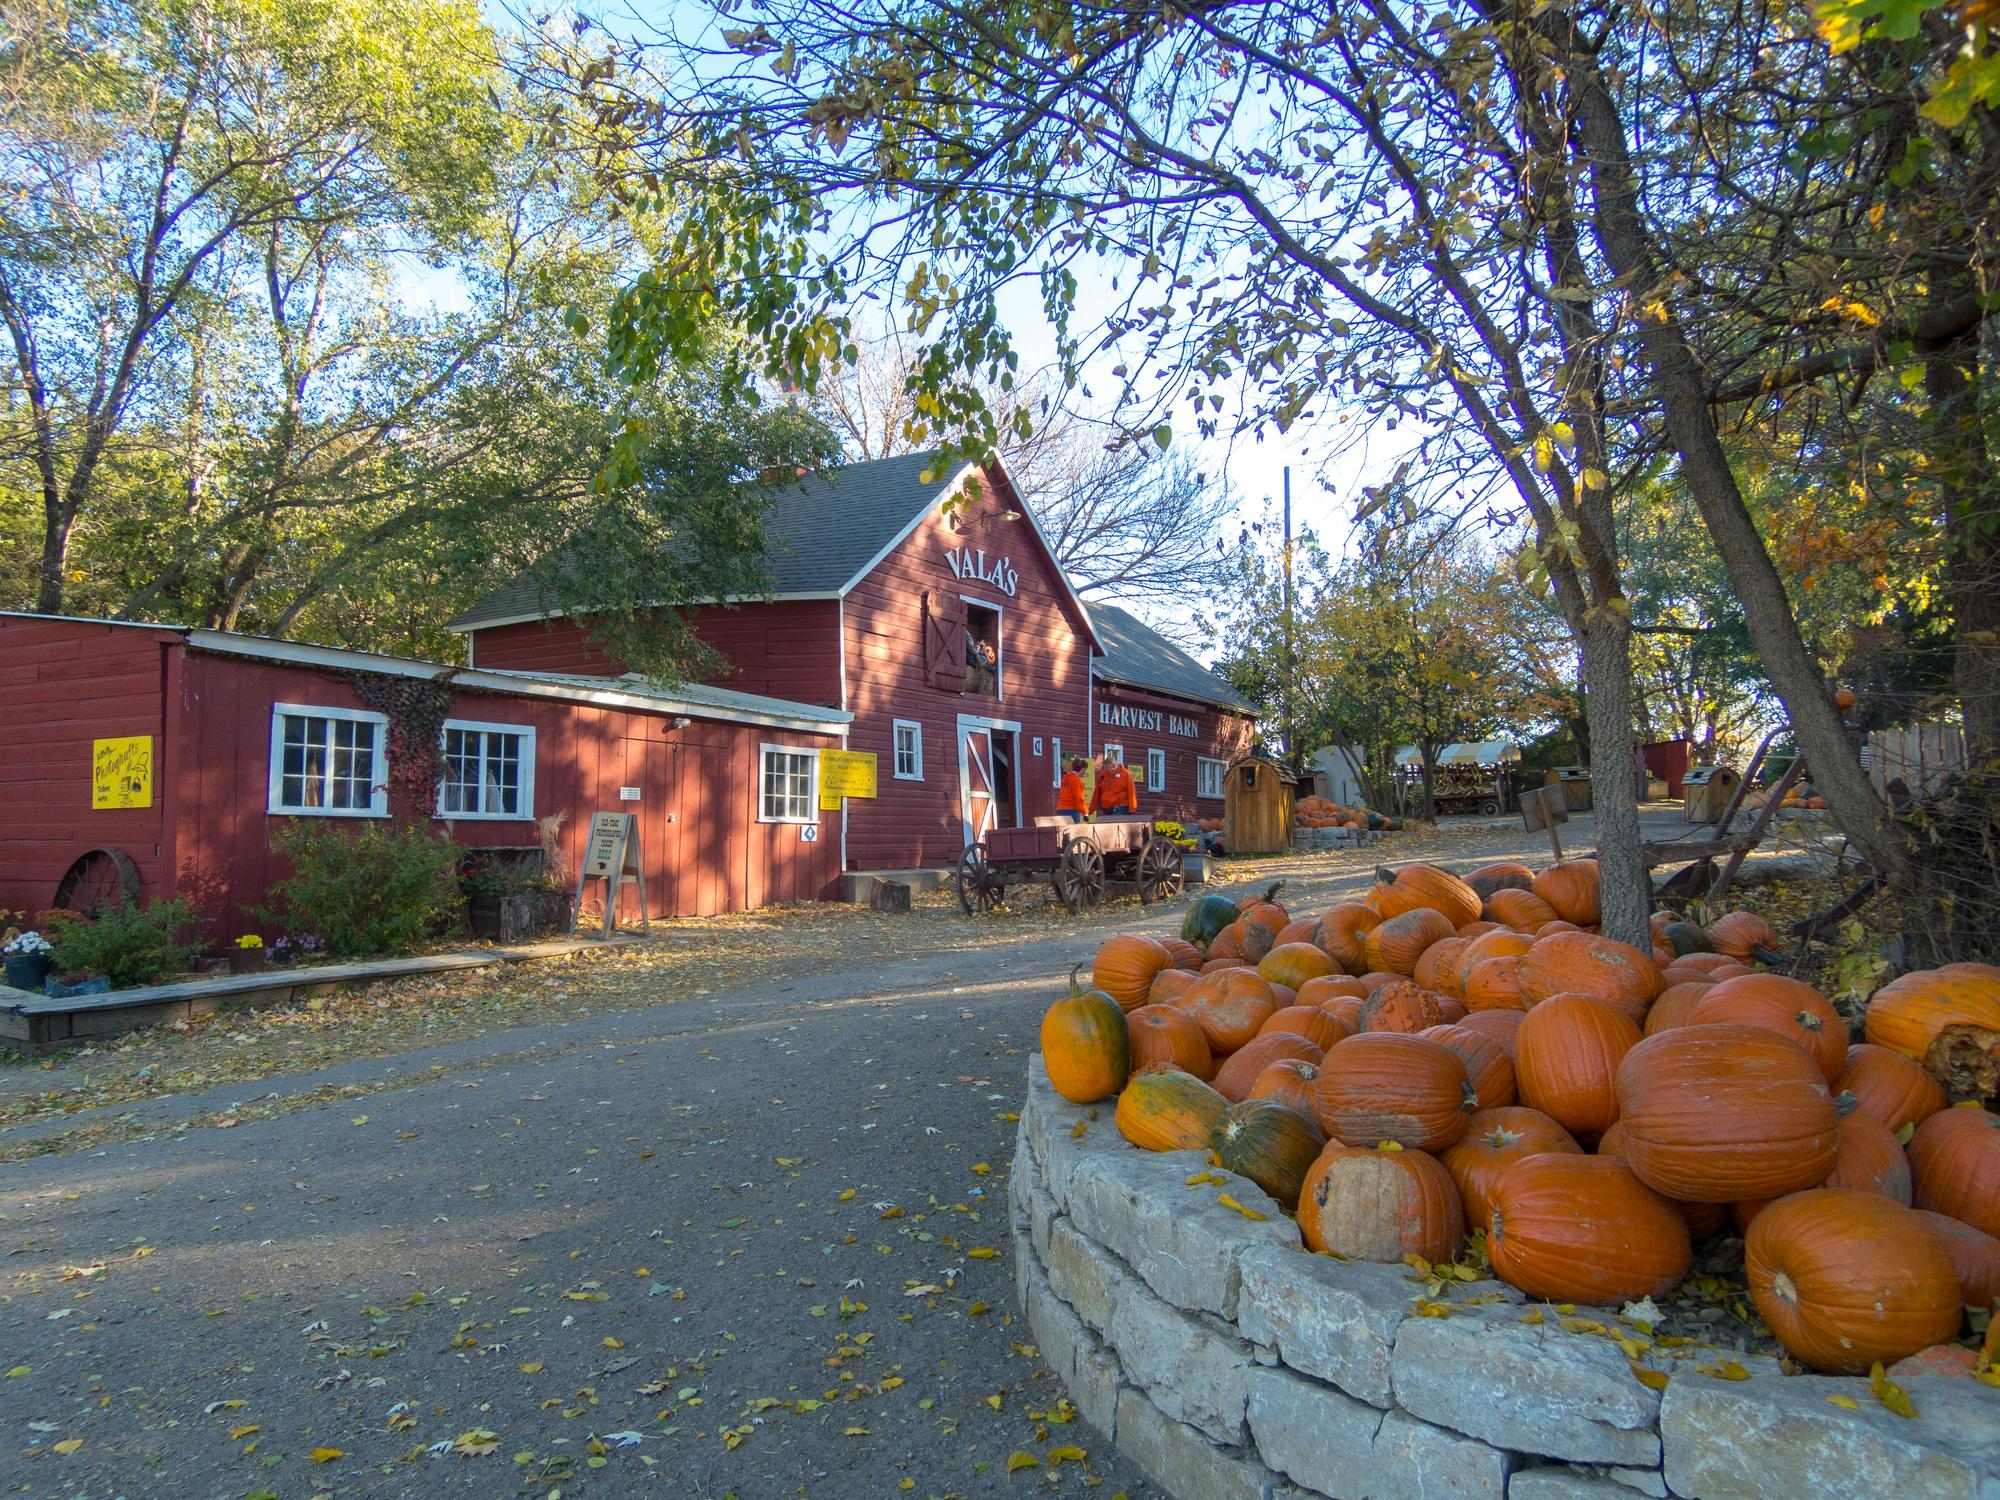 Find tickets from Vala's Pumpkin Patch